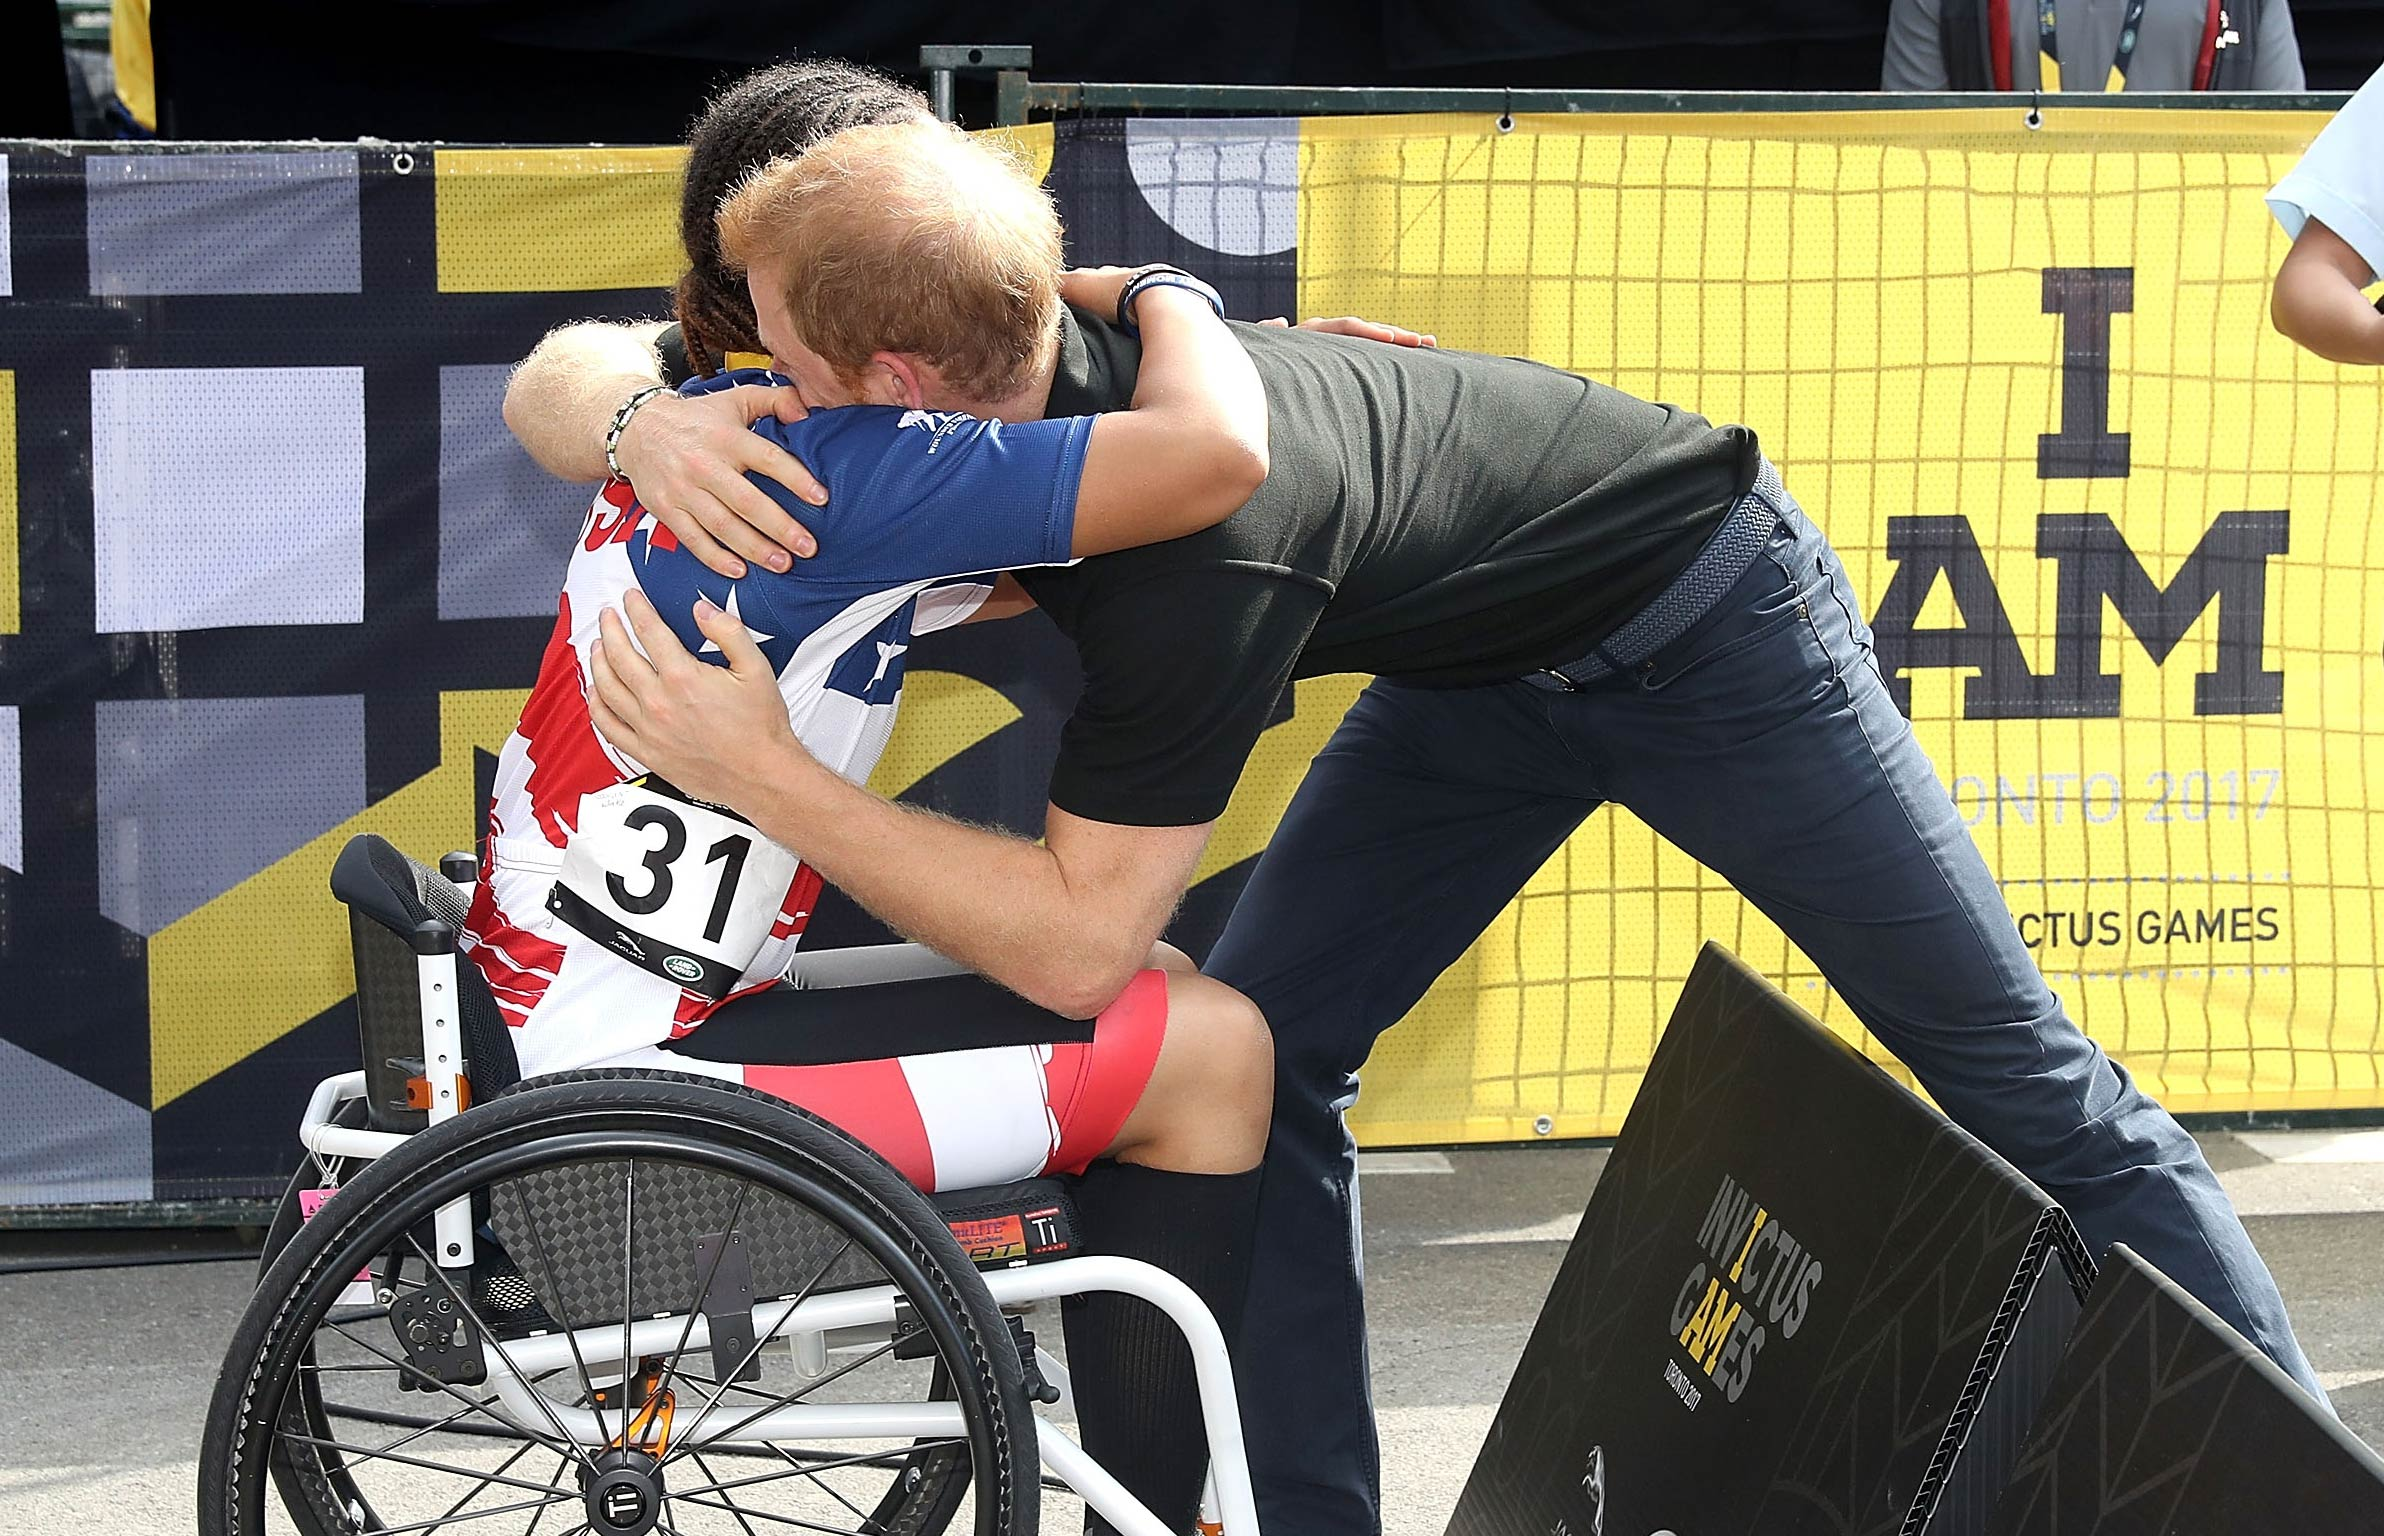 Prince Harry Invictus Games Toronto 2017